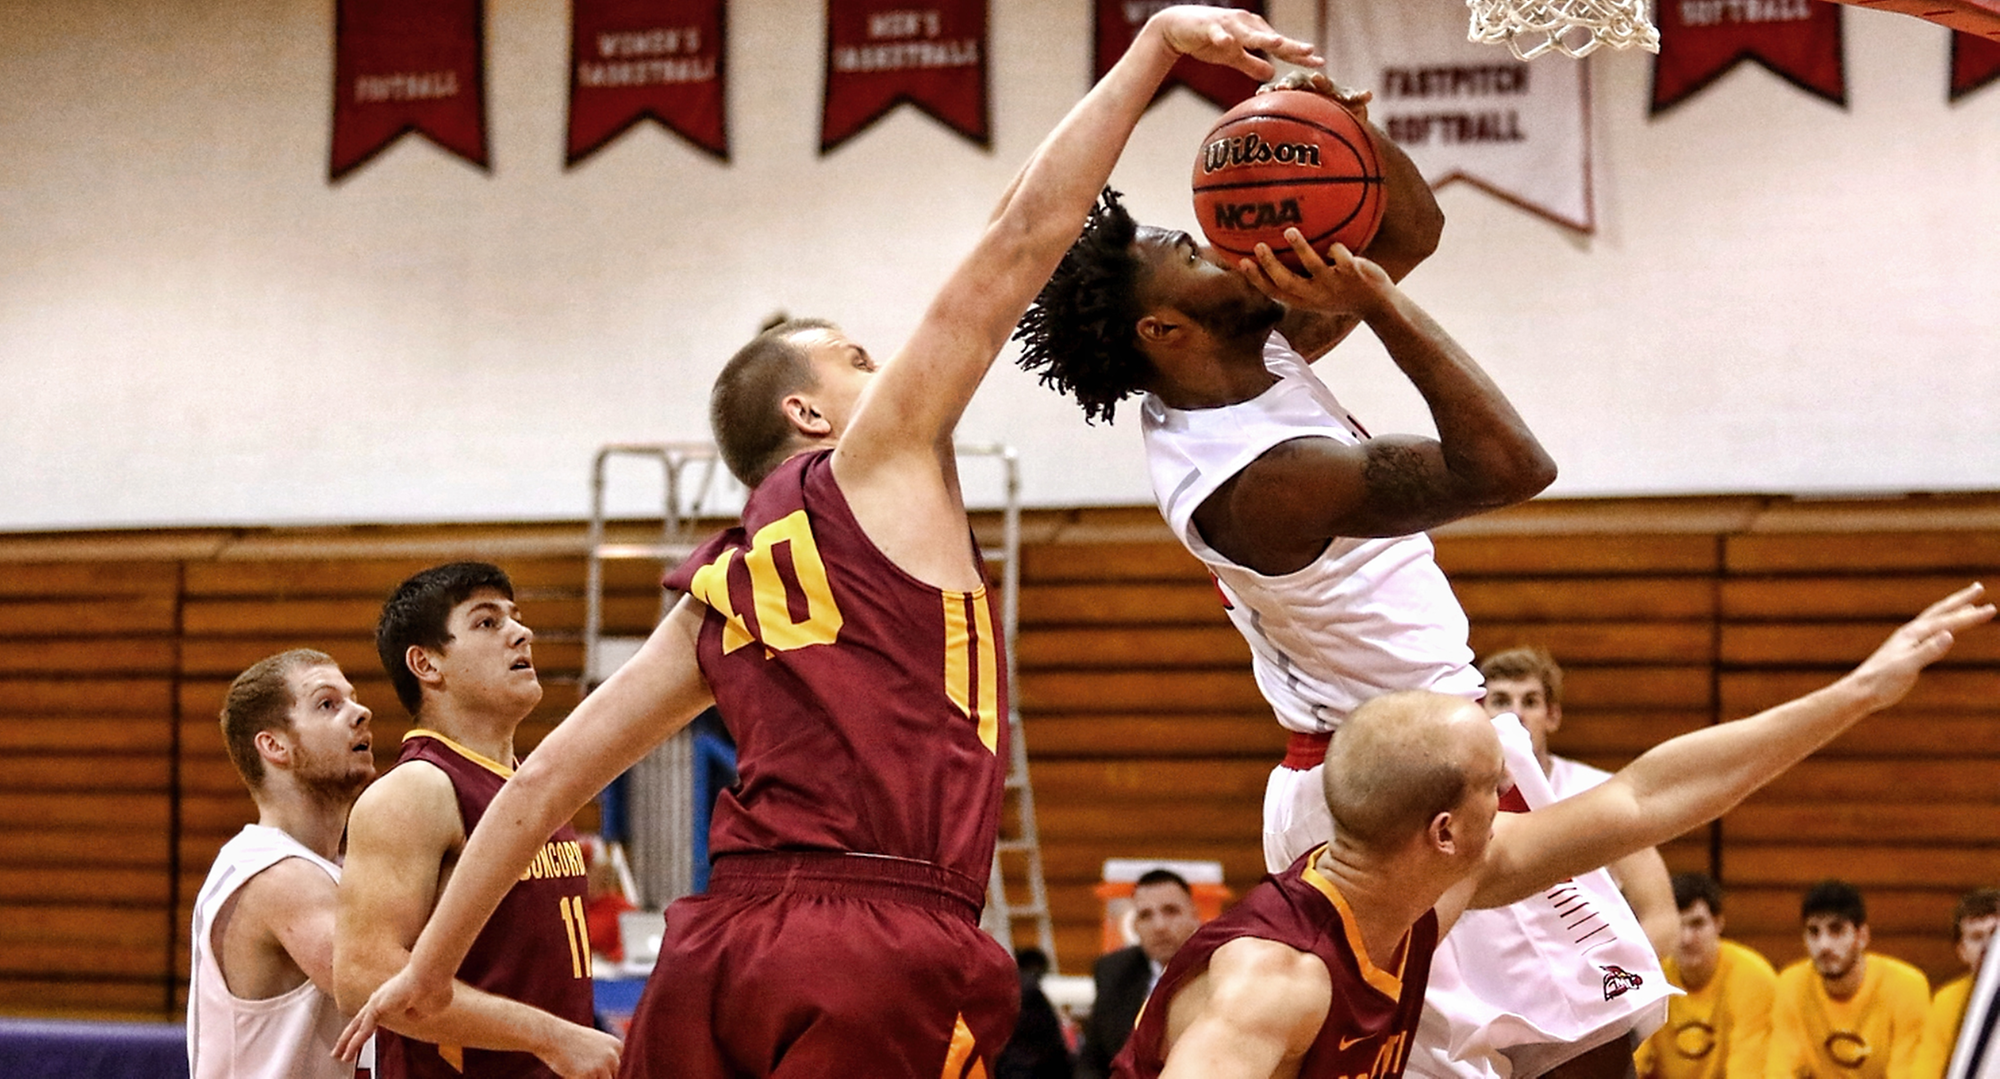 Junior Austin Heins goes for the block in the Cobbers' win at St. Mary's. Heins had 13 points in the team's third win of the year. (Photo courtesy of Ryan Coleman, D3photography.com)